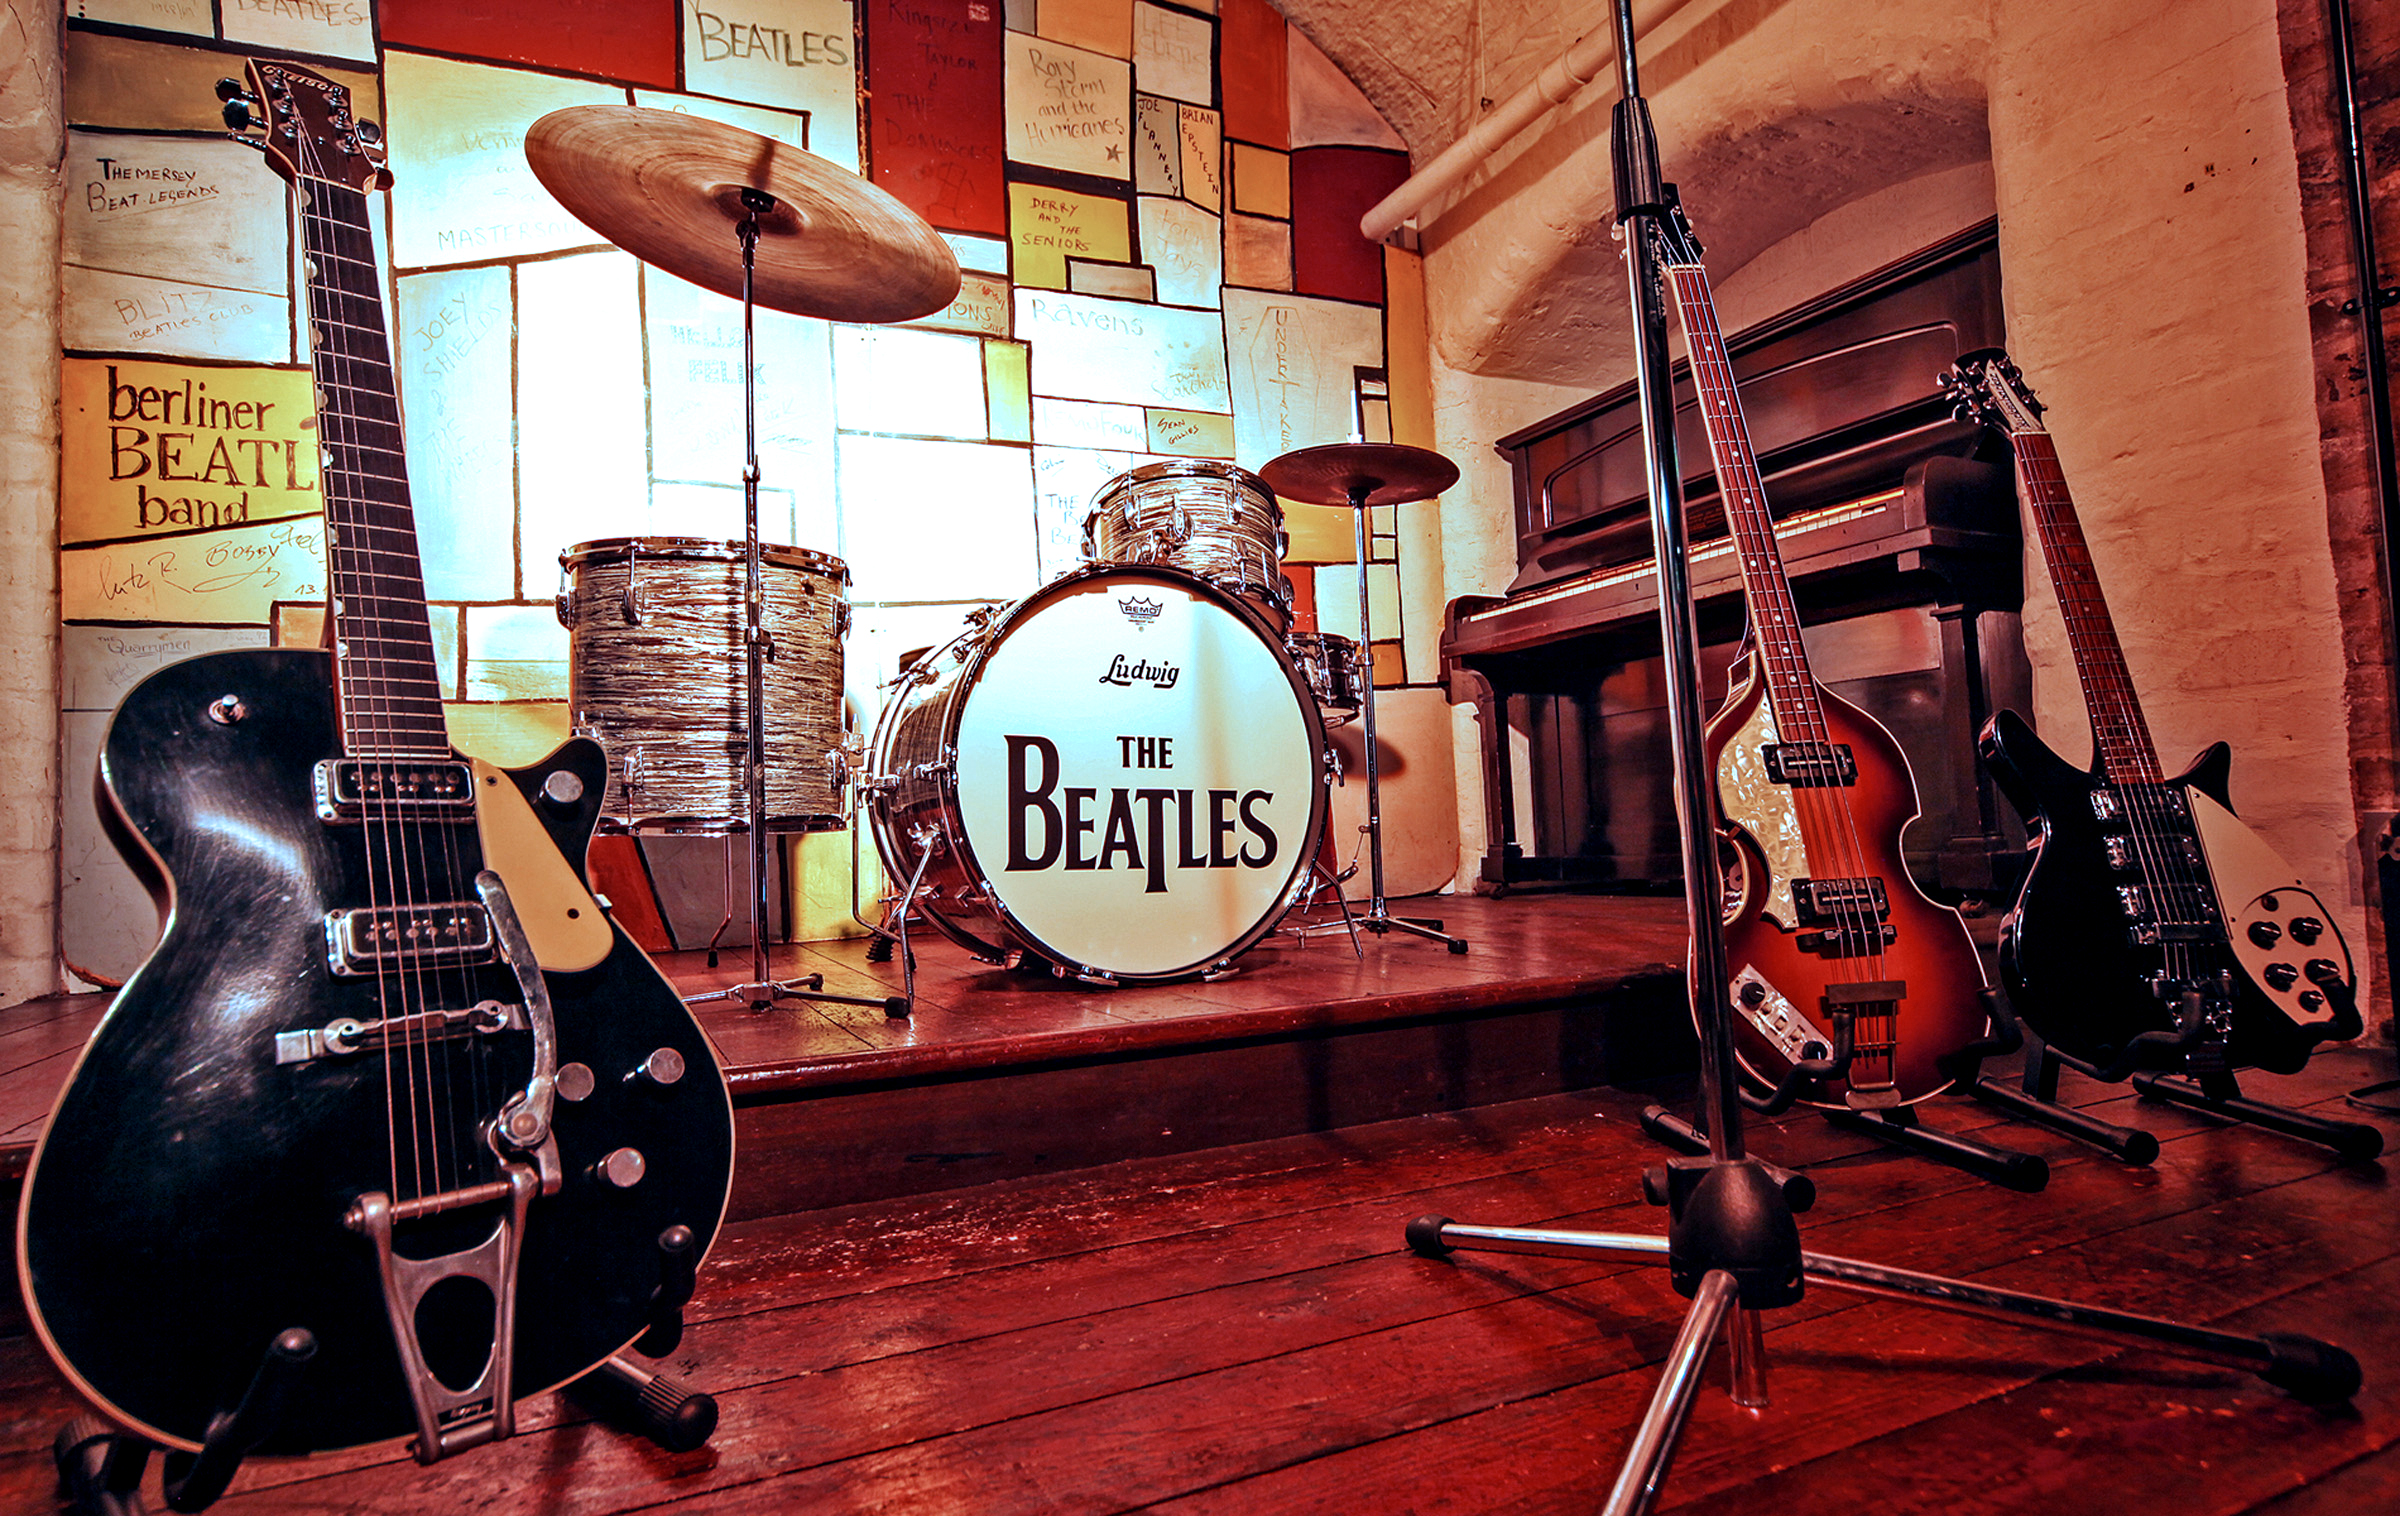 The Beatles Story in Liverpool, United Kingdom